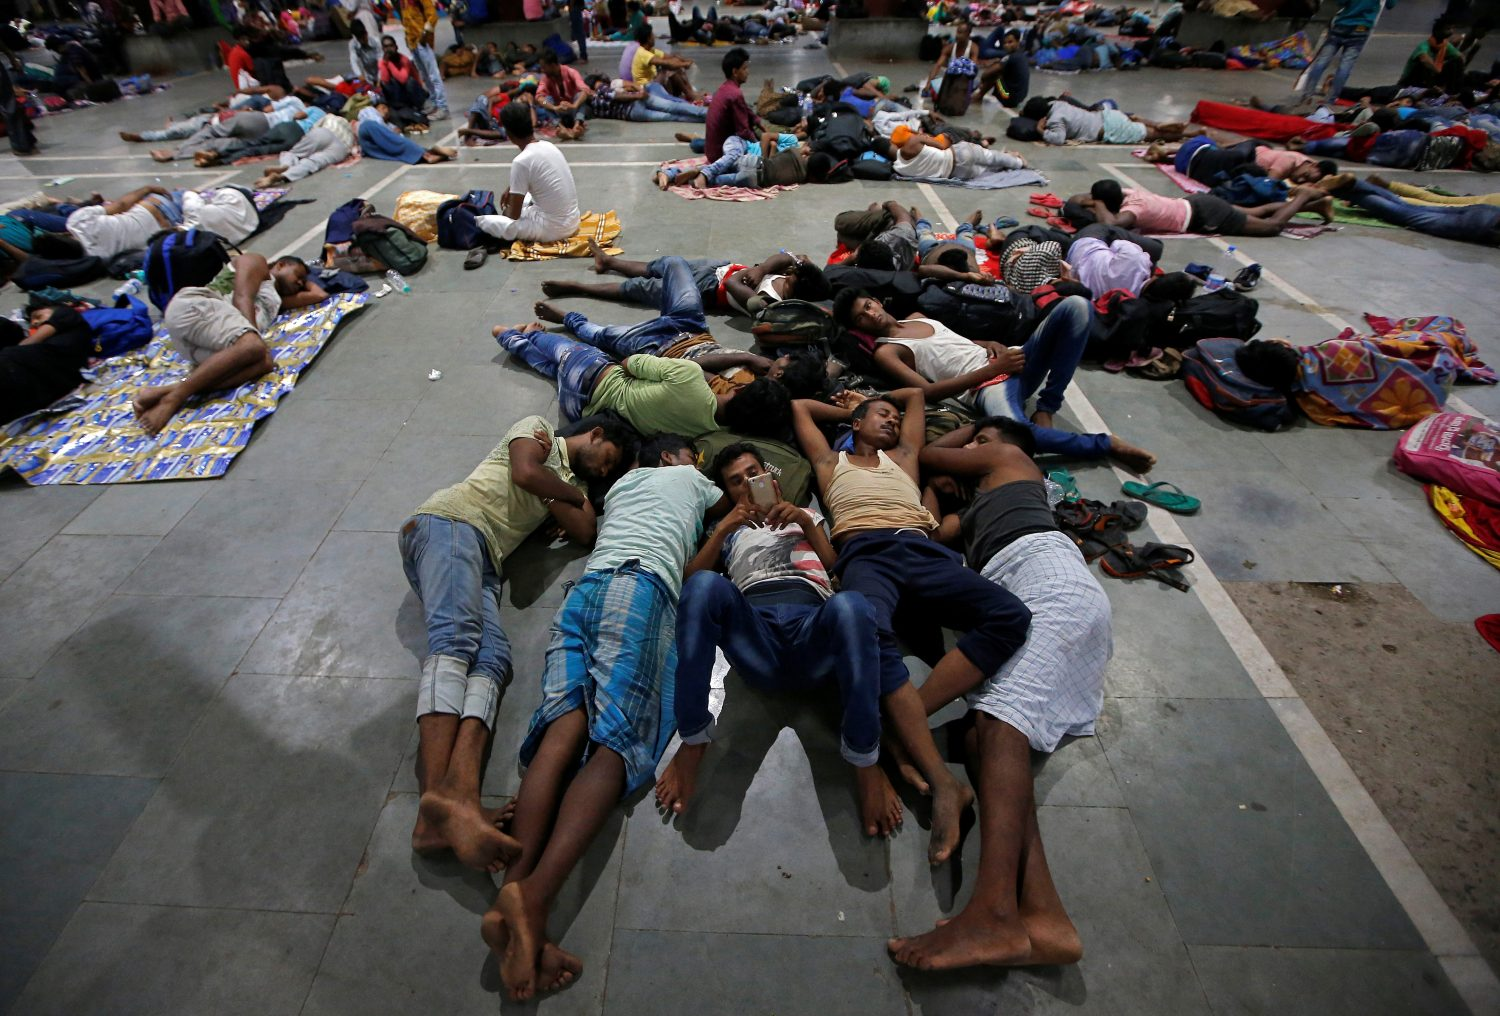 Stranded passengers rest inside a railway station after trains between Kolkata and Odisha were cancelled ahead of Cyclone Fani, in Kolkata, India, May 3, 2019. REUTERS/Rupak De Chowdhuri